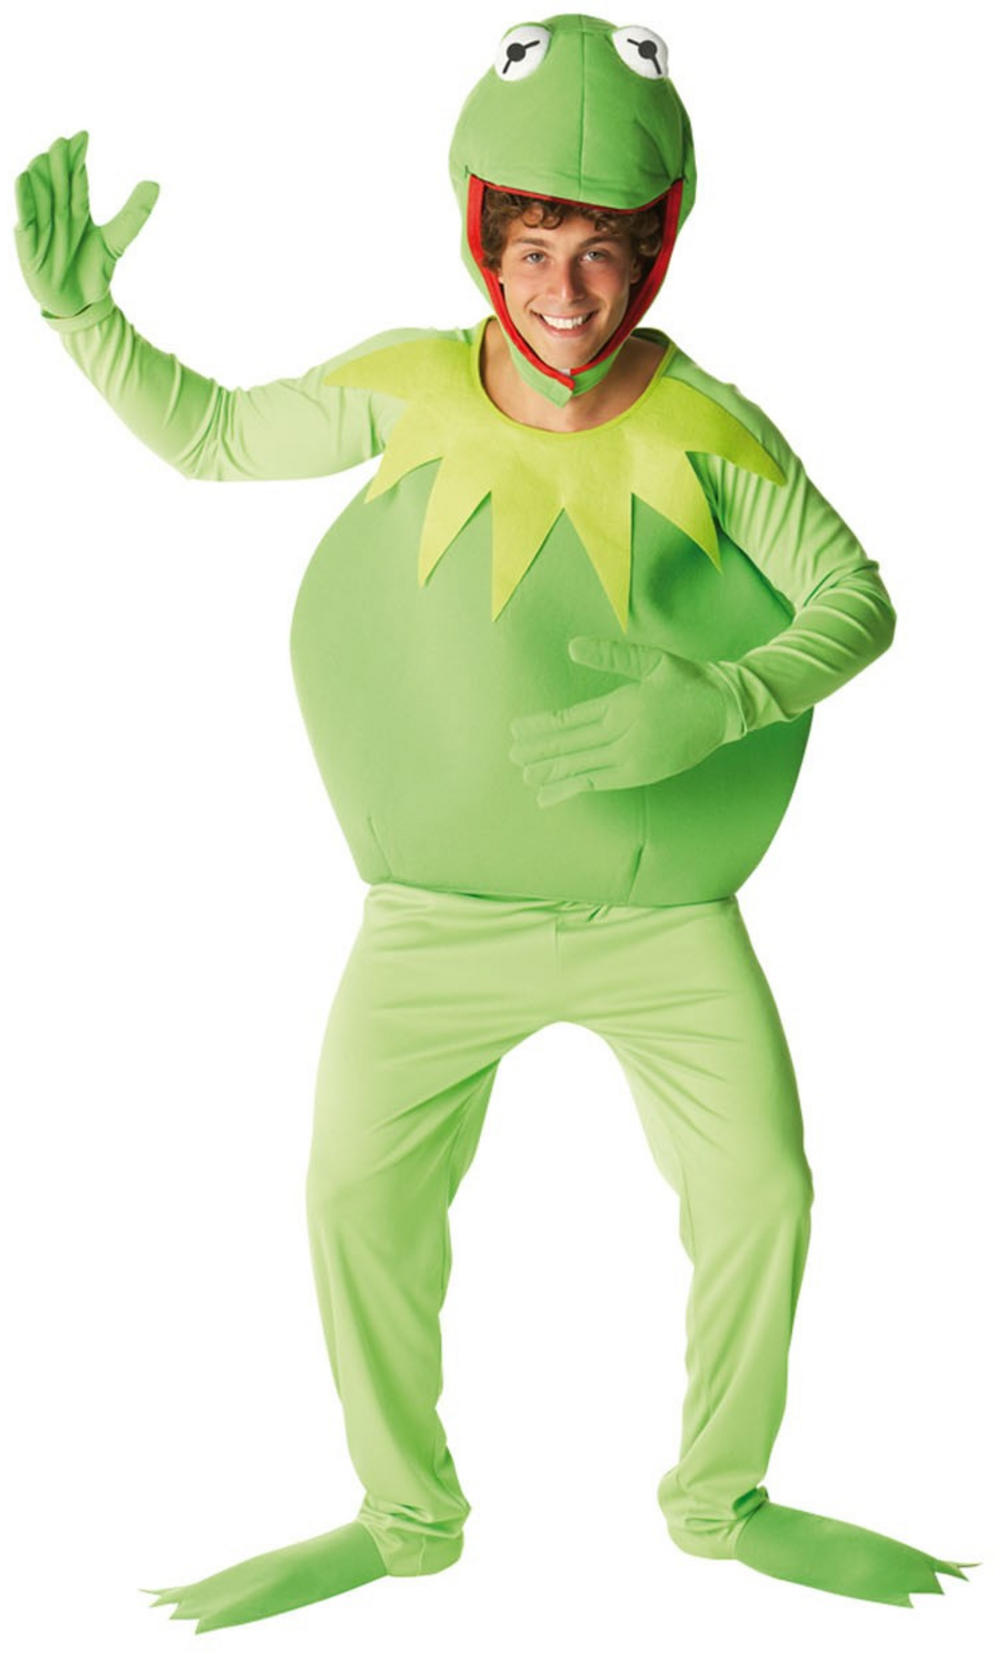 The Muppets Kermit The Frog Costume